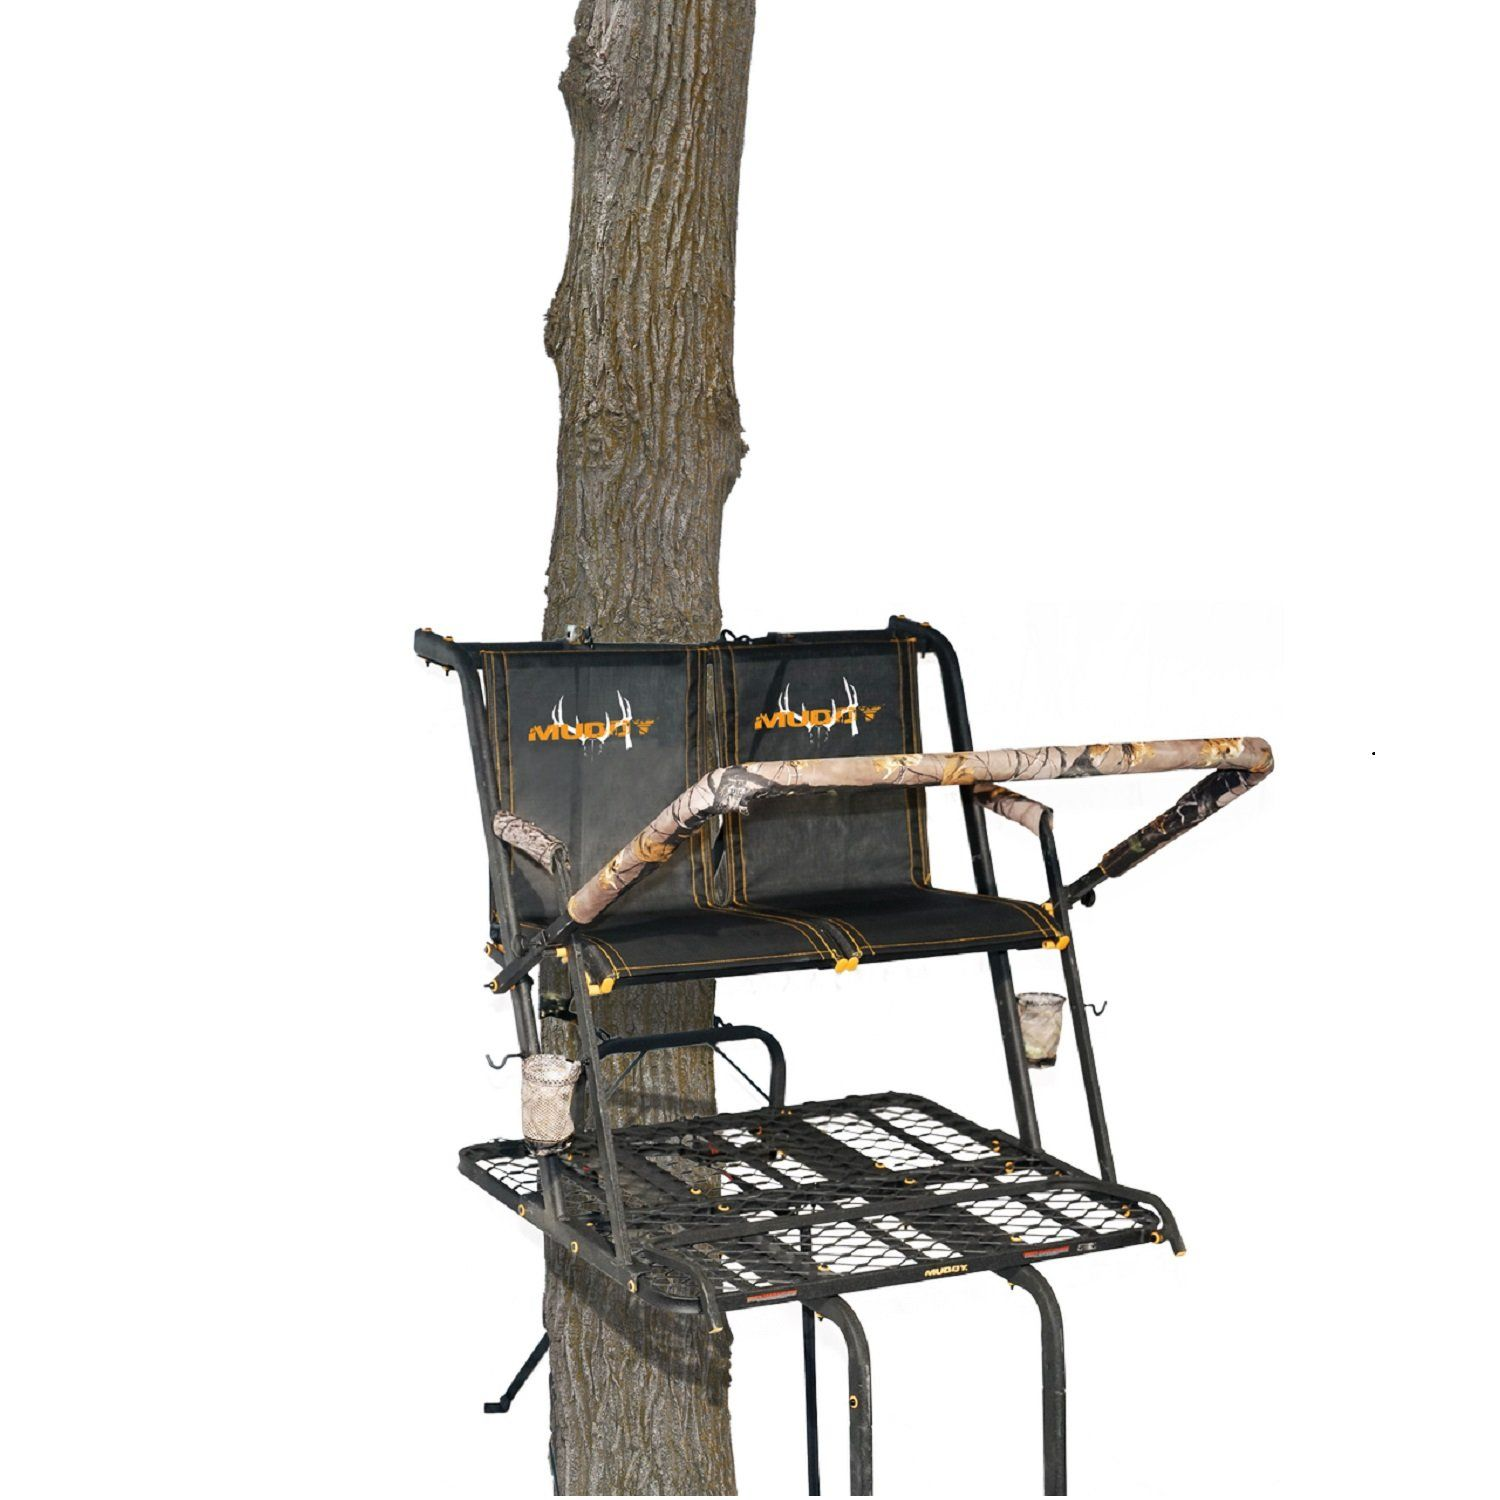 Muddy Mls2601 Nexus Xtl 2 Man With Tree Lok System 20 Ladderstand Black Https Huntinggearsuperstore Com Product Muddy Mls2601 Ladder Stands Nexus System